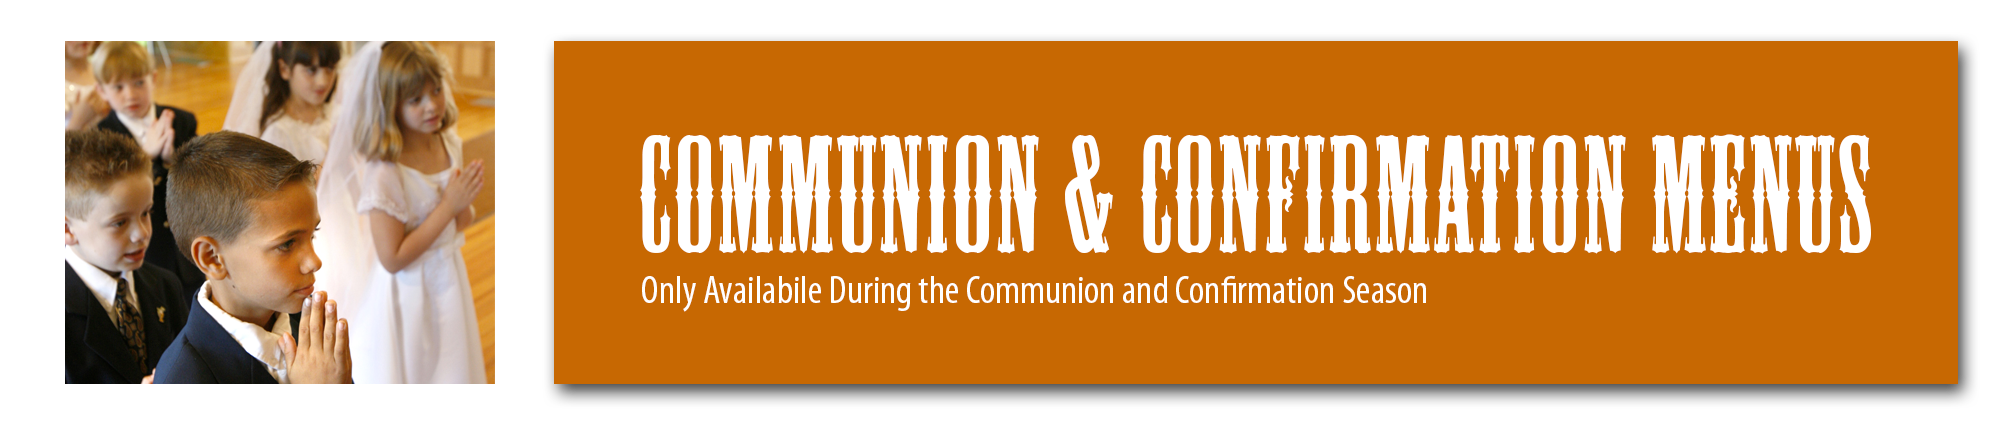 Communion And Confirmation Menus